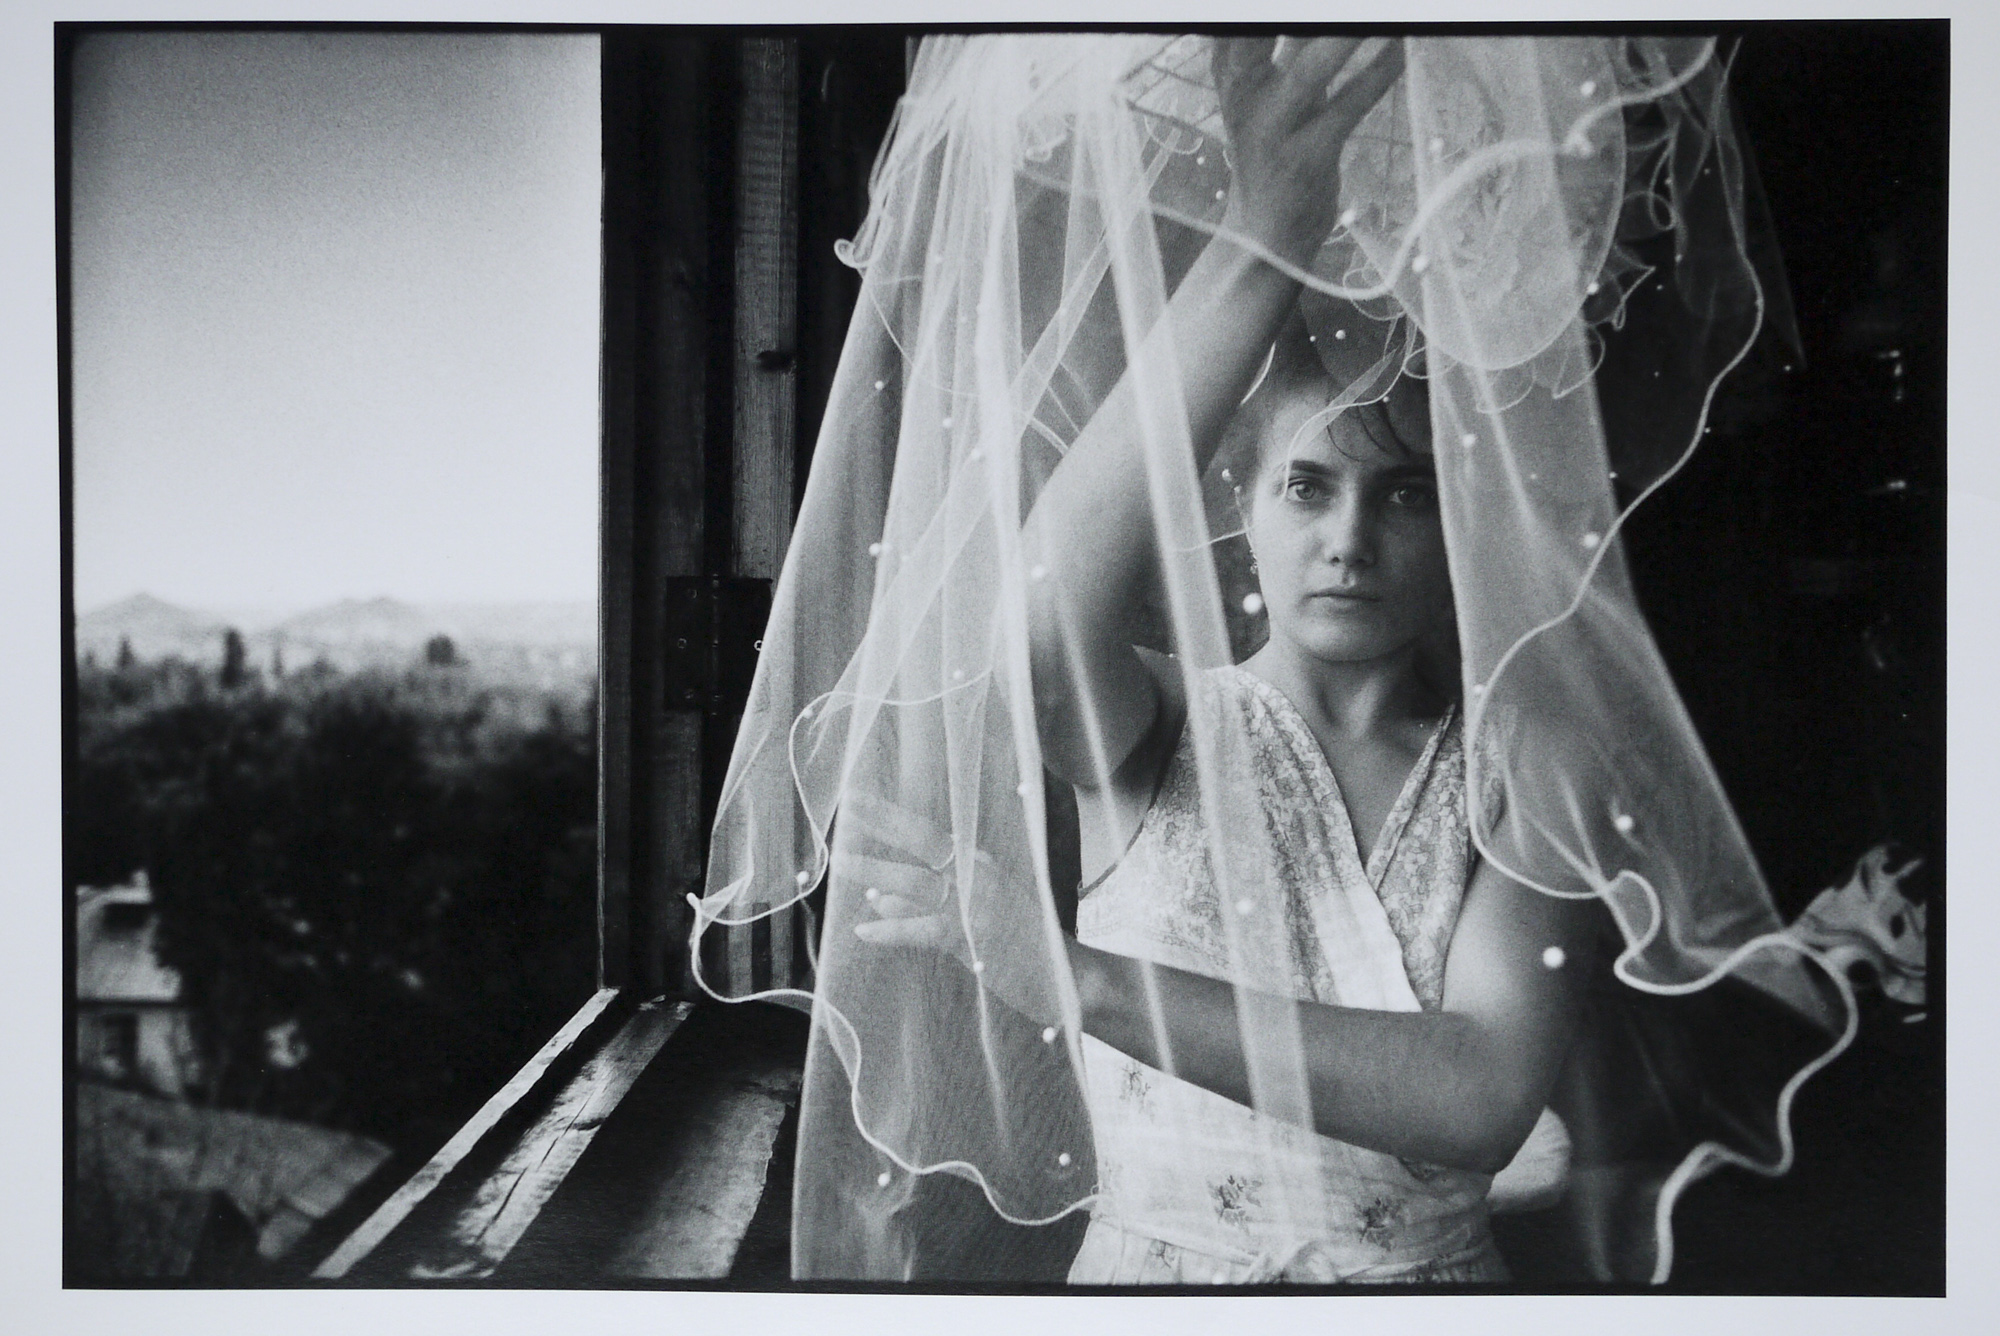 Irina Slakar preparing her veil on her wedding day. She is marrying Demitri, a former miner at the Socialist Donbass coal mine, Donetsk, June 1993.